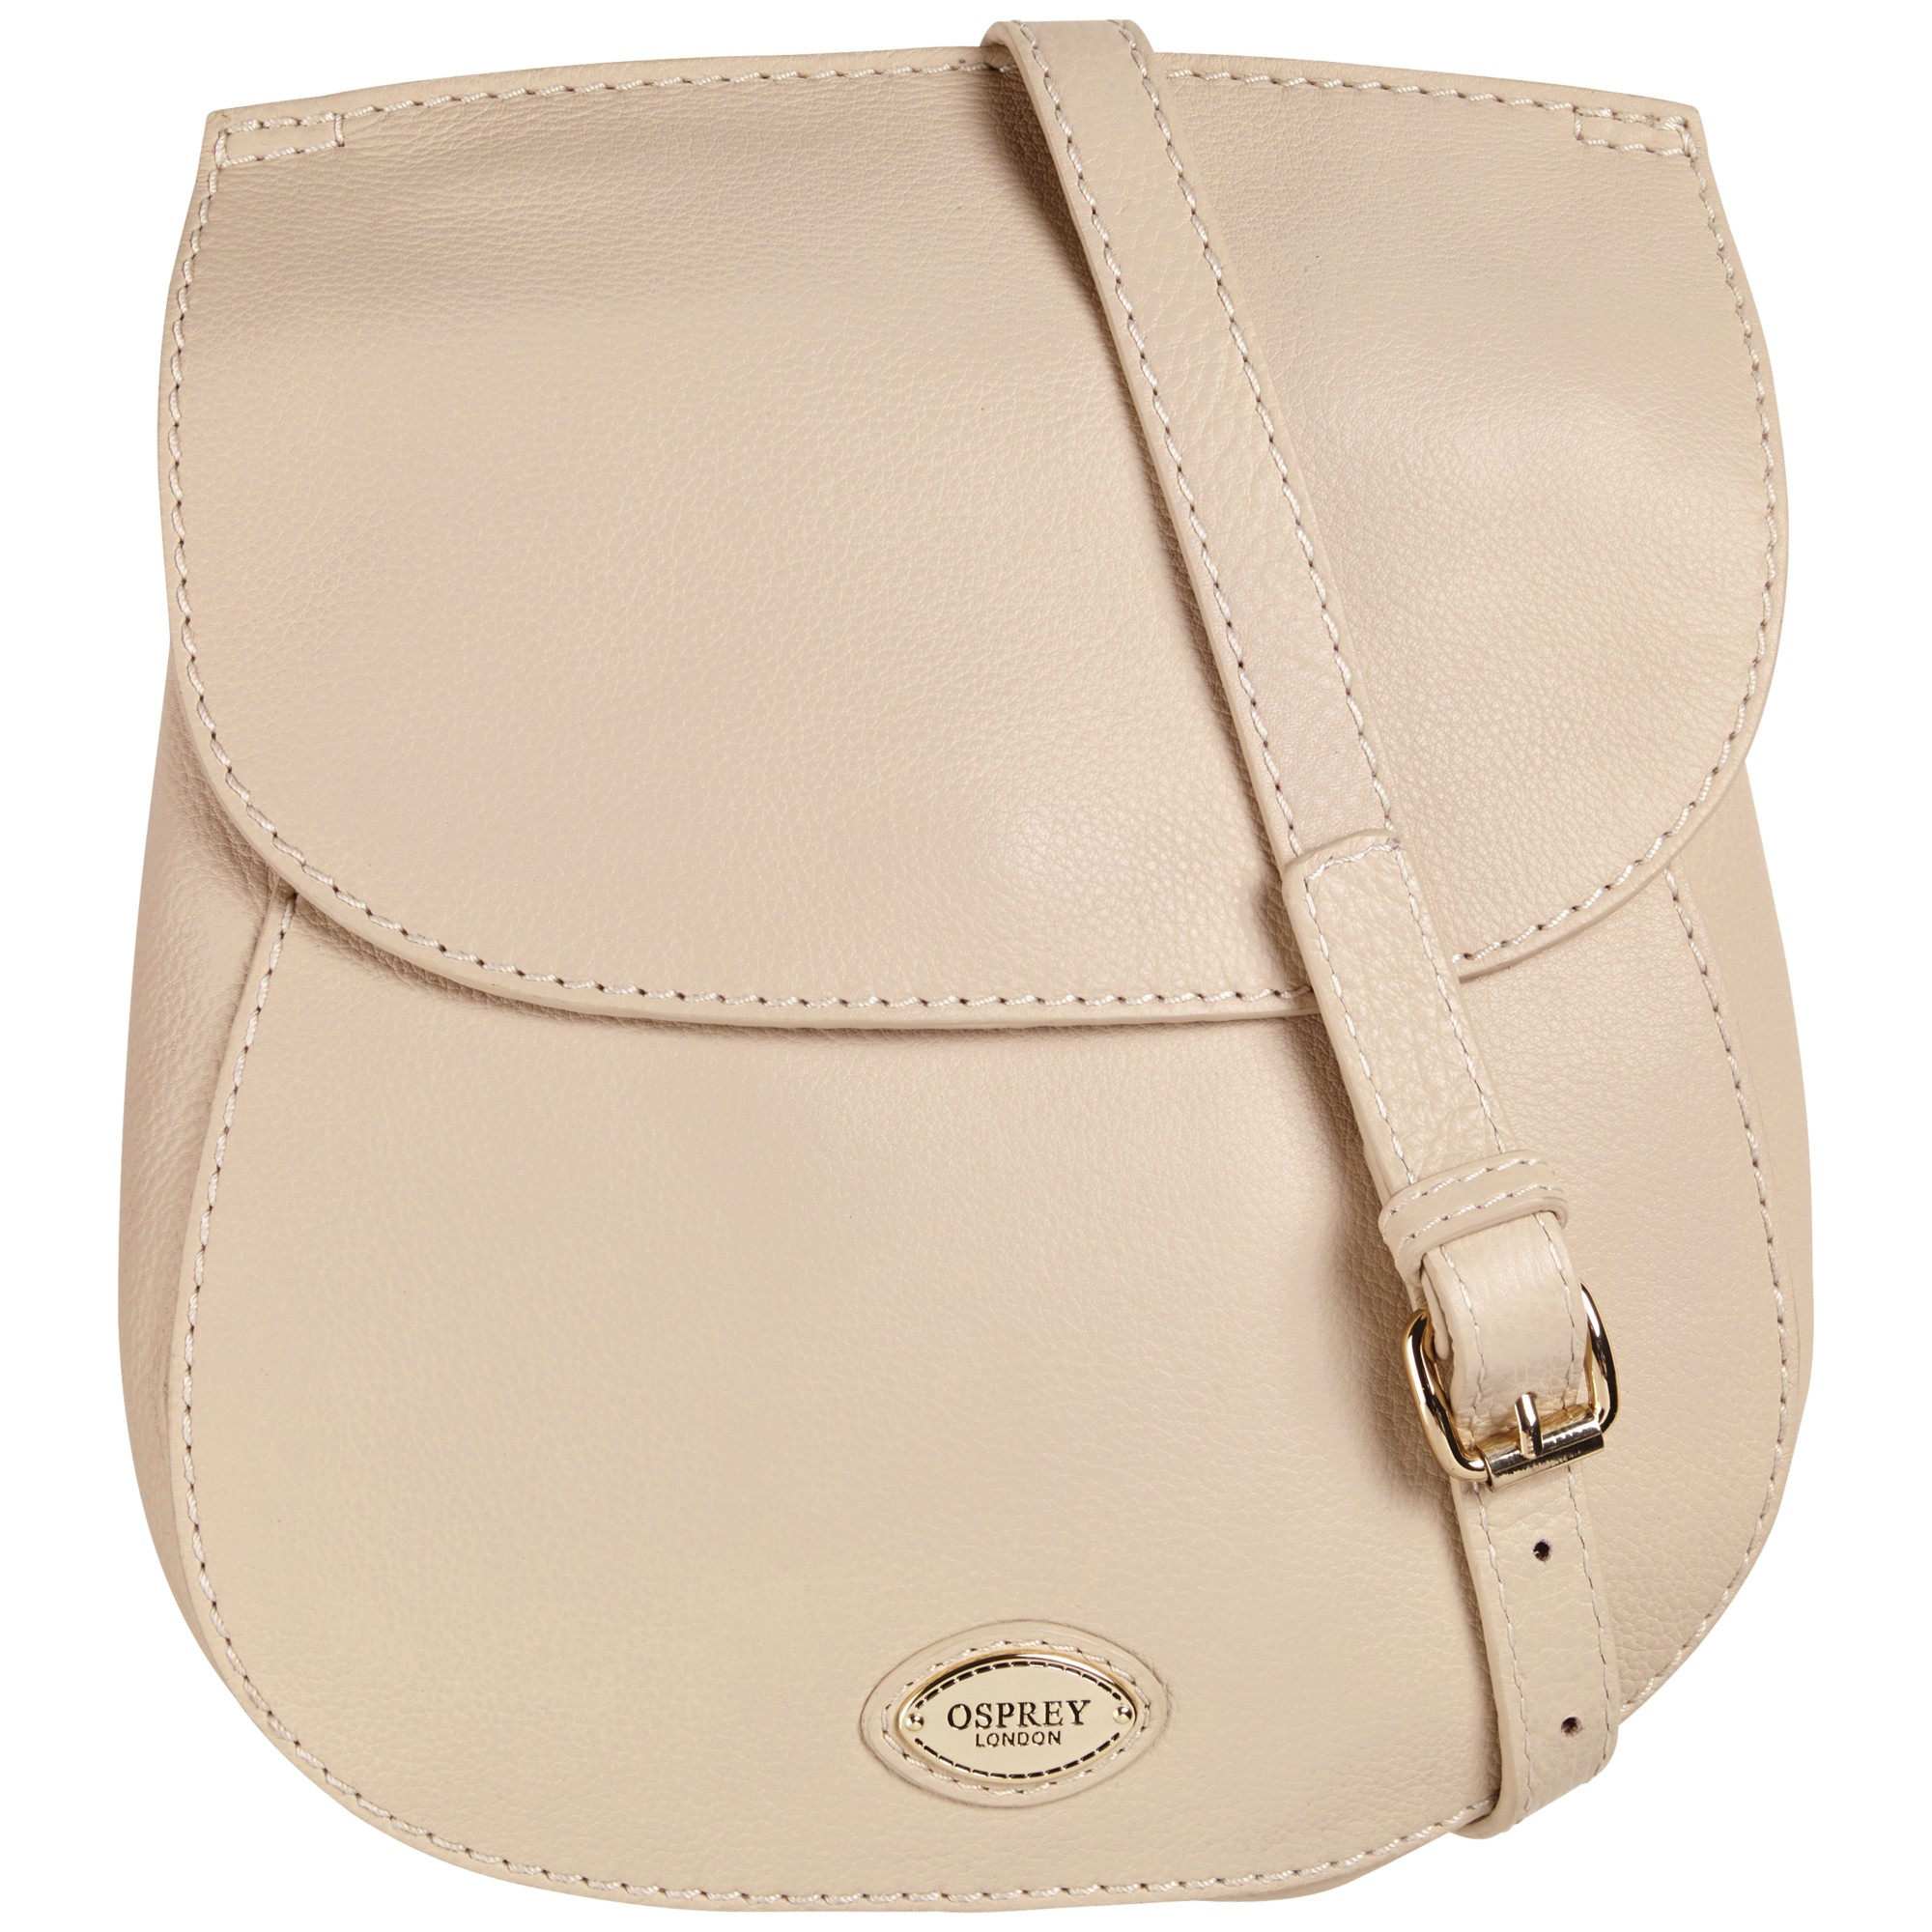 Osprey womens leather gloves - Gallery